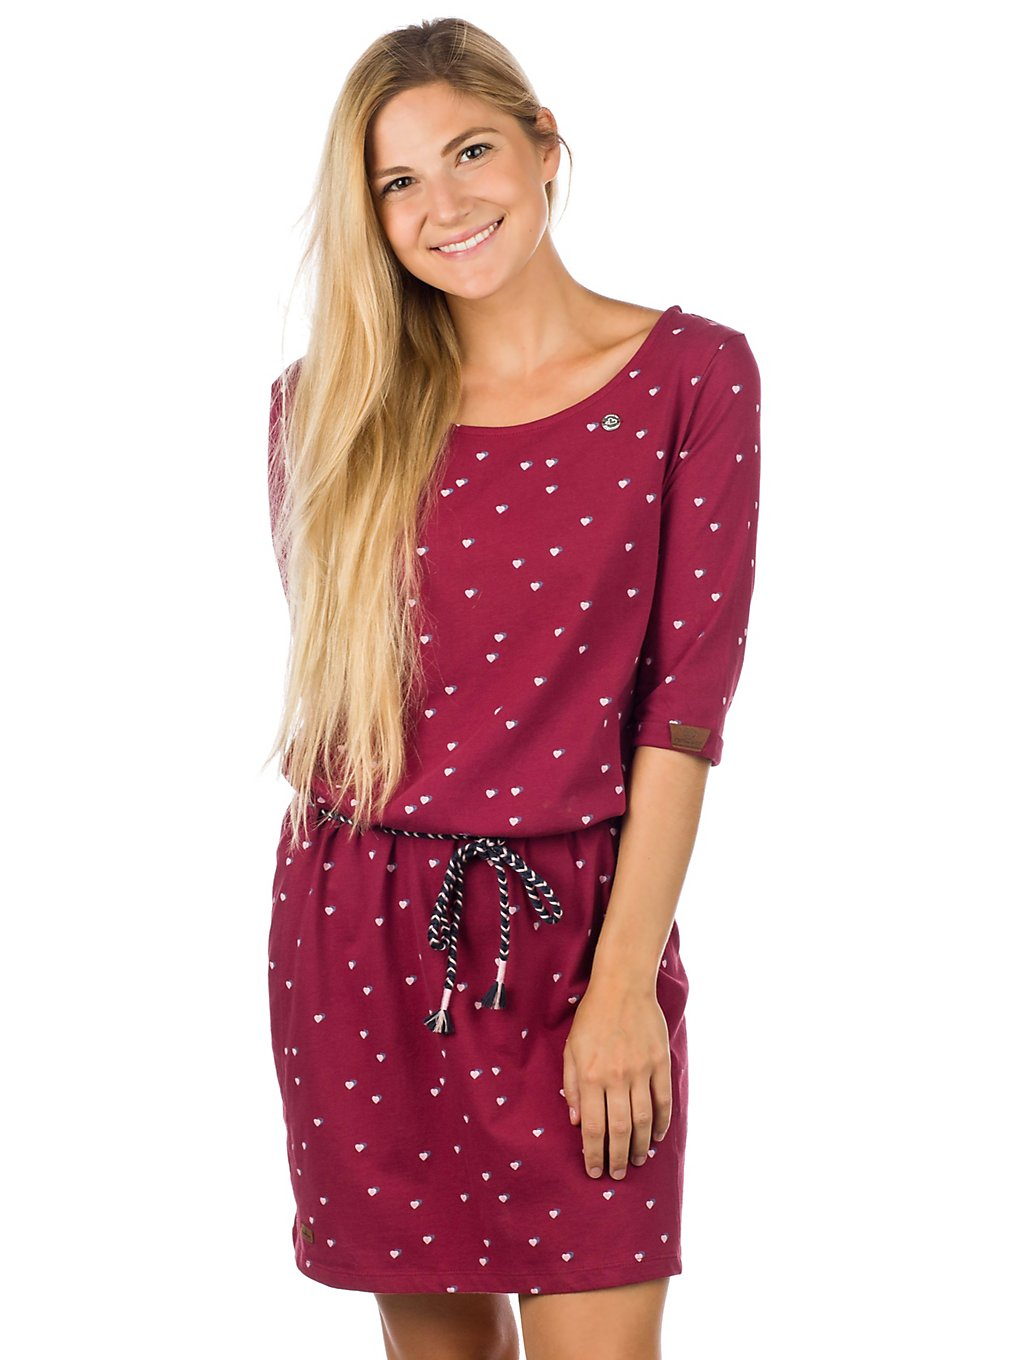 ragwear Tamy Dress wine red